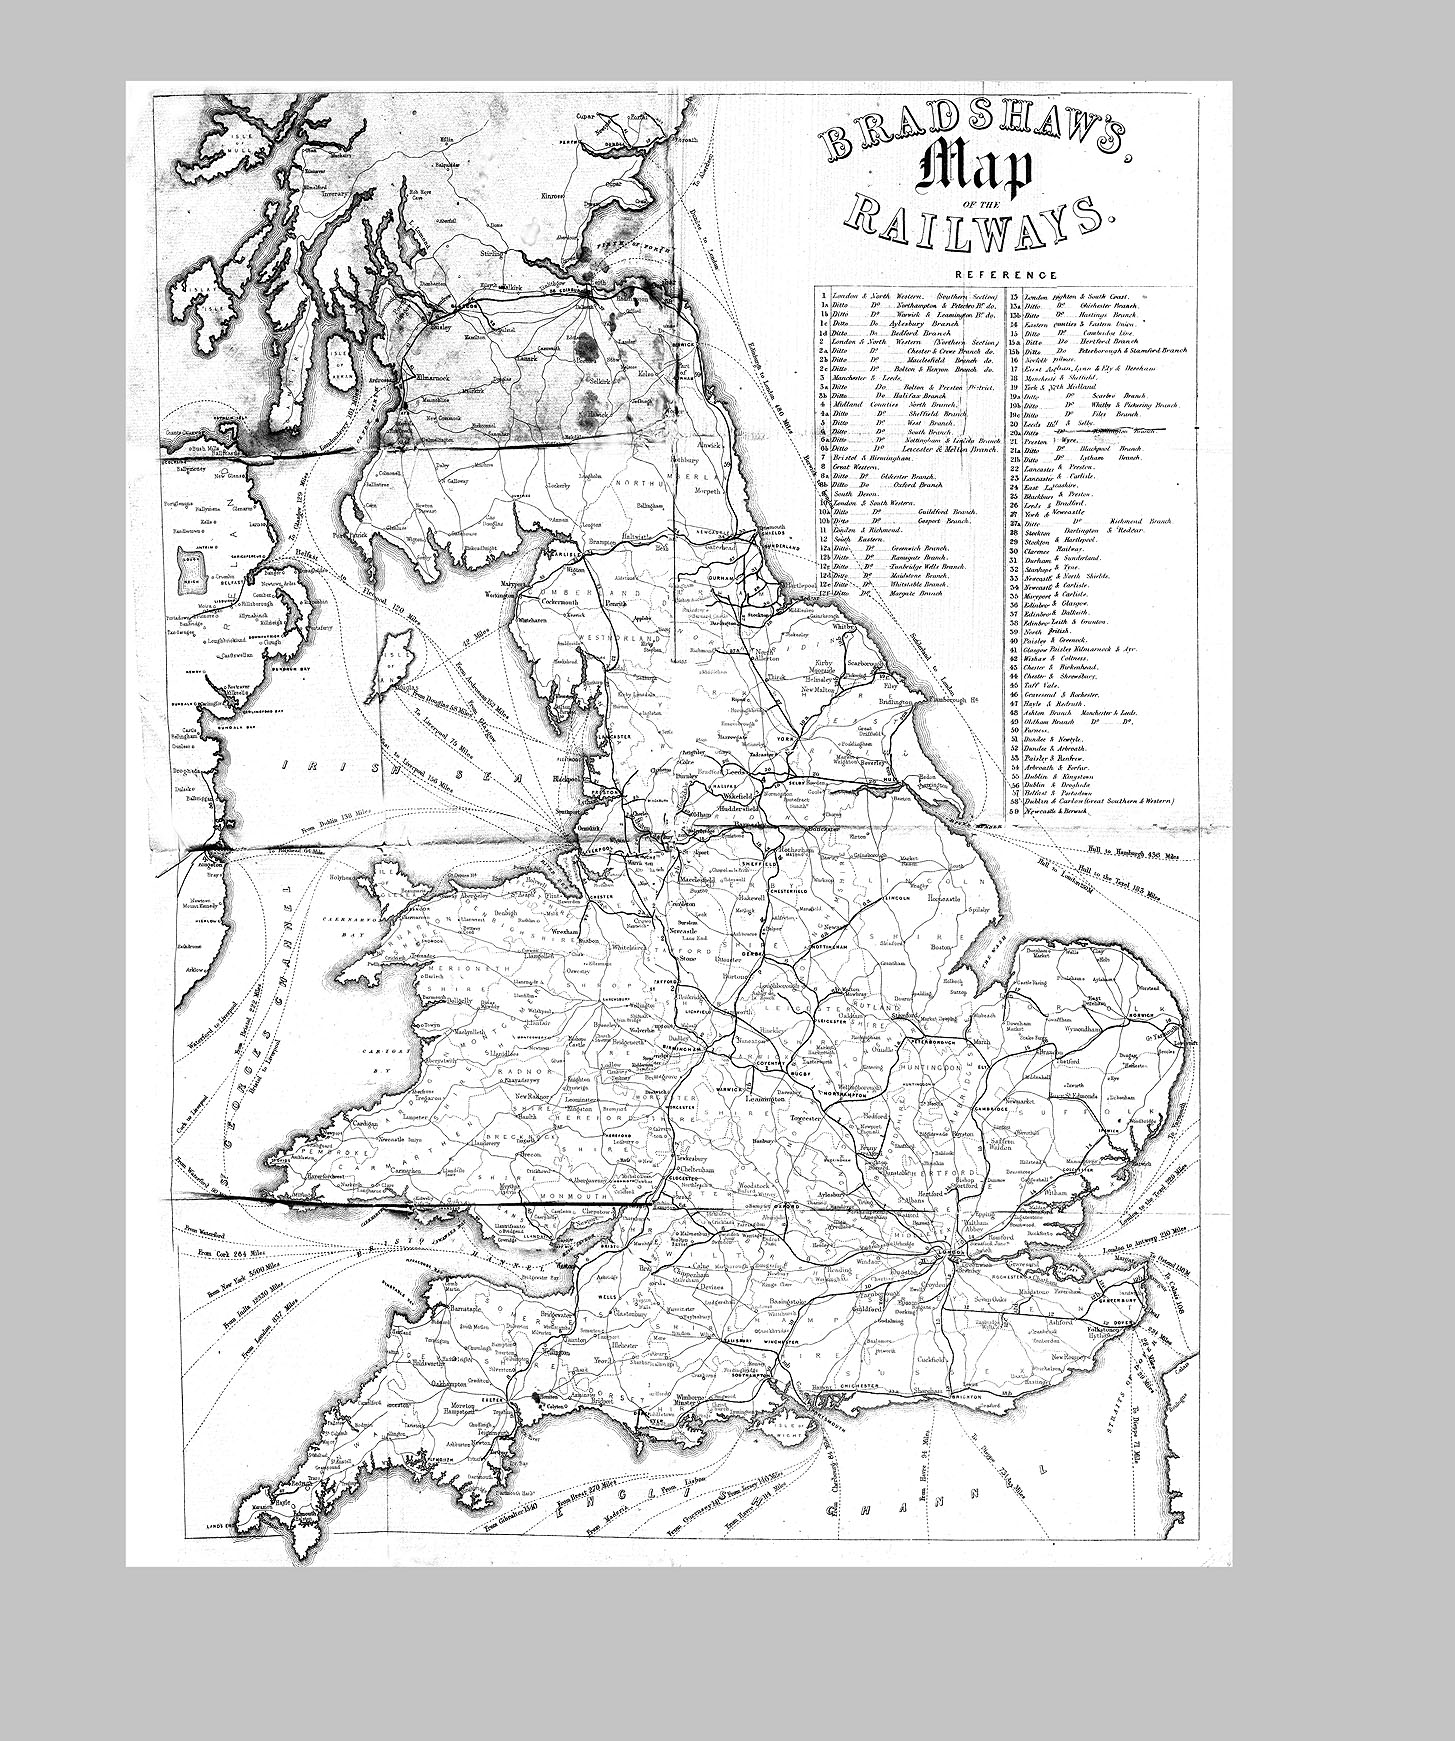 Untitled Two Way Switch Bbc Bitesize Examine Route Maps For The Railways Such As 1850 Bradshaws Map Of On Consulting Detective Website